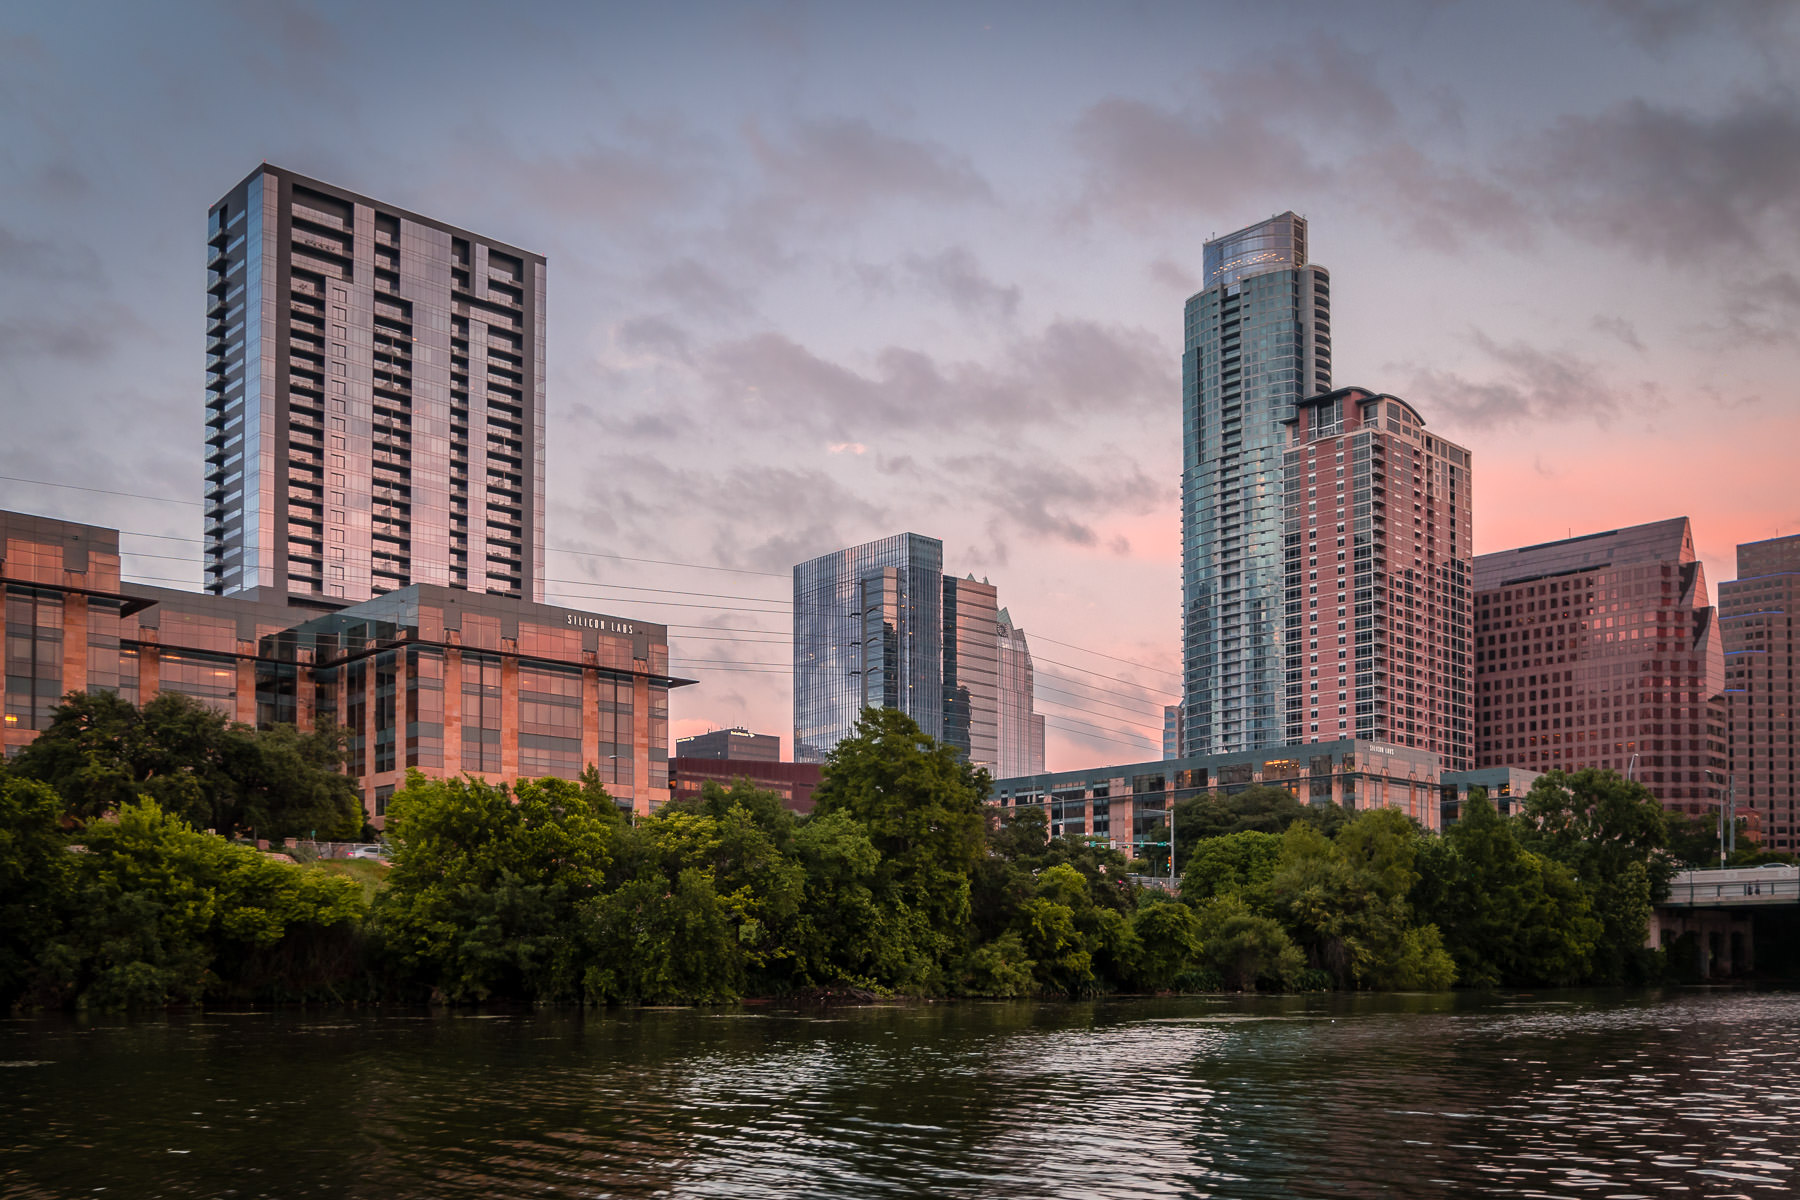 The setting sun illuminates buildings along the shoreline of Austin, Texas' Lady Bird Lake.